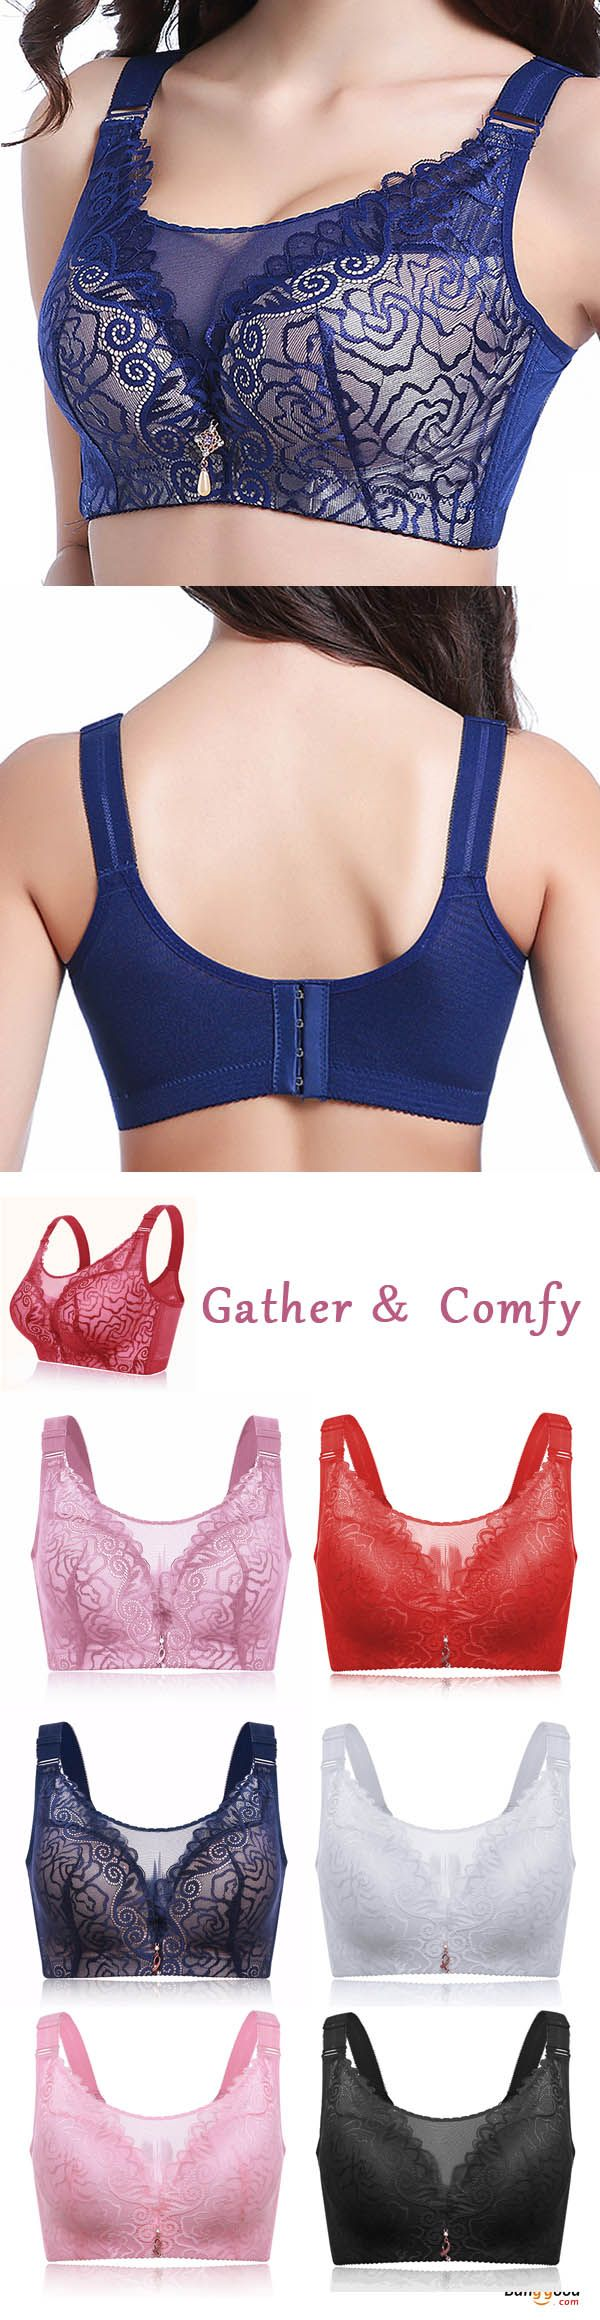 US$11.99 + Free shipping. Lace Embroidery, Sexy/Push Up/Deep V, No Rims, Full Cup, Adjustable Straps, 4×4 Hook-and-eye. Colors: Black, Red, Pink, Cameo, Royal Blue, White, Burgundy. Size: C-D Cup,36-44 Underbust. Buy now!